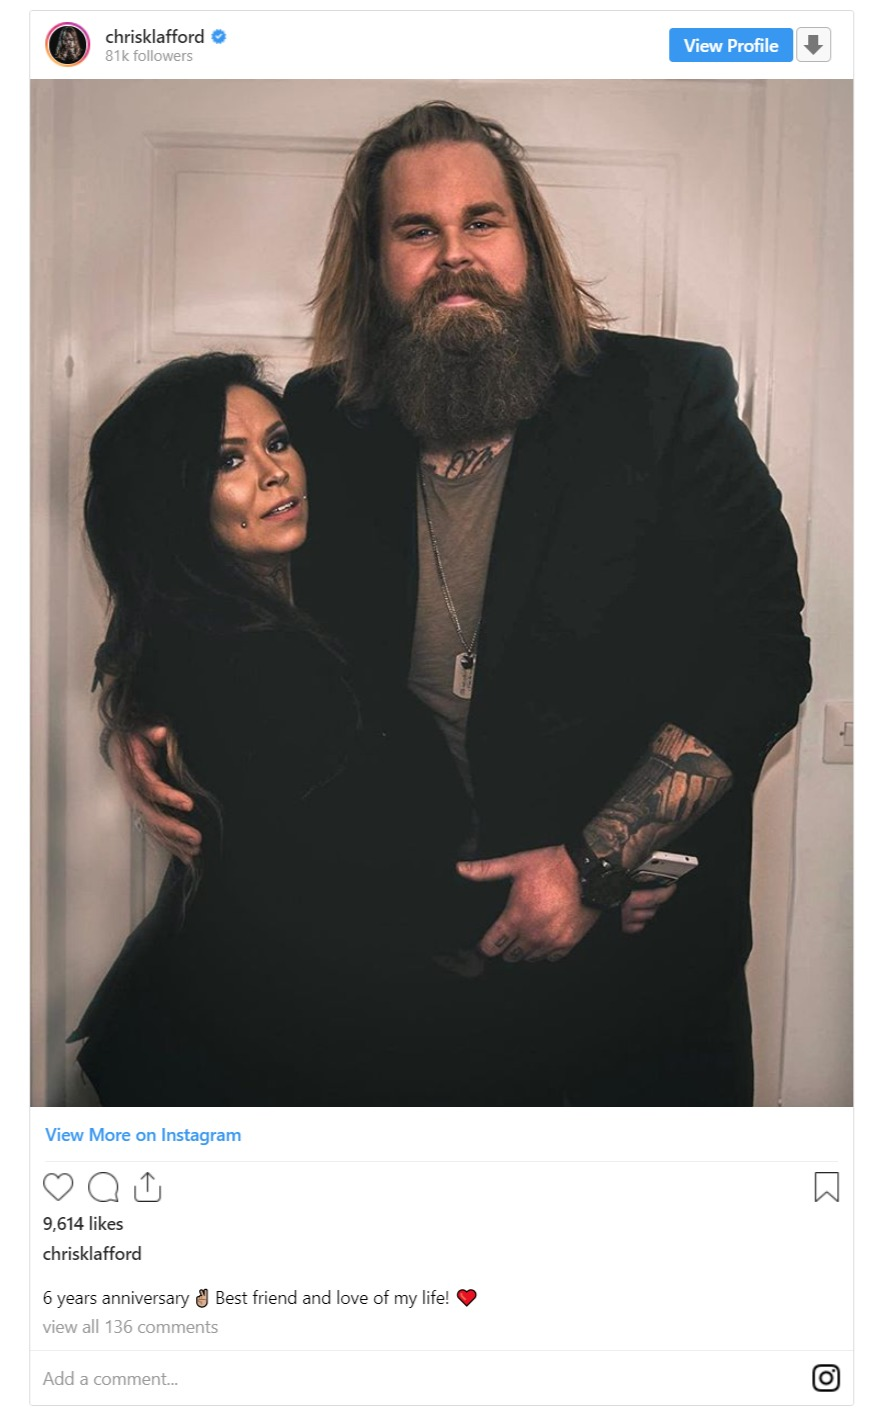 Chris Kläfford's posted a sweet picture of his girlfriend, Bob Linger on Instagram on their 6-year anniversary in February 2019.